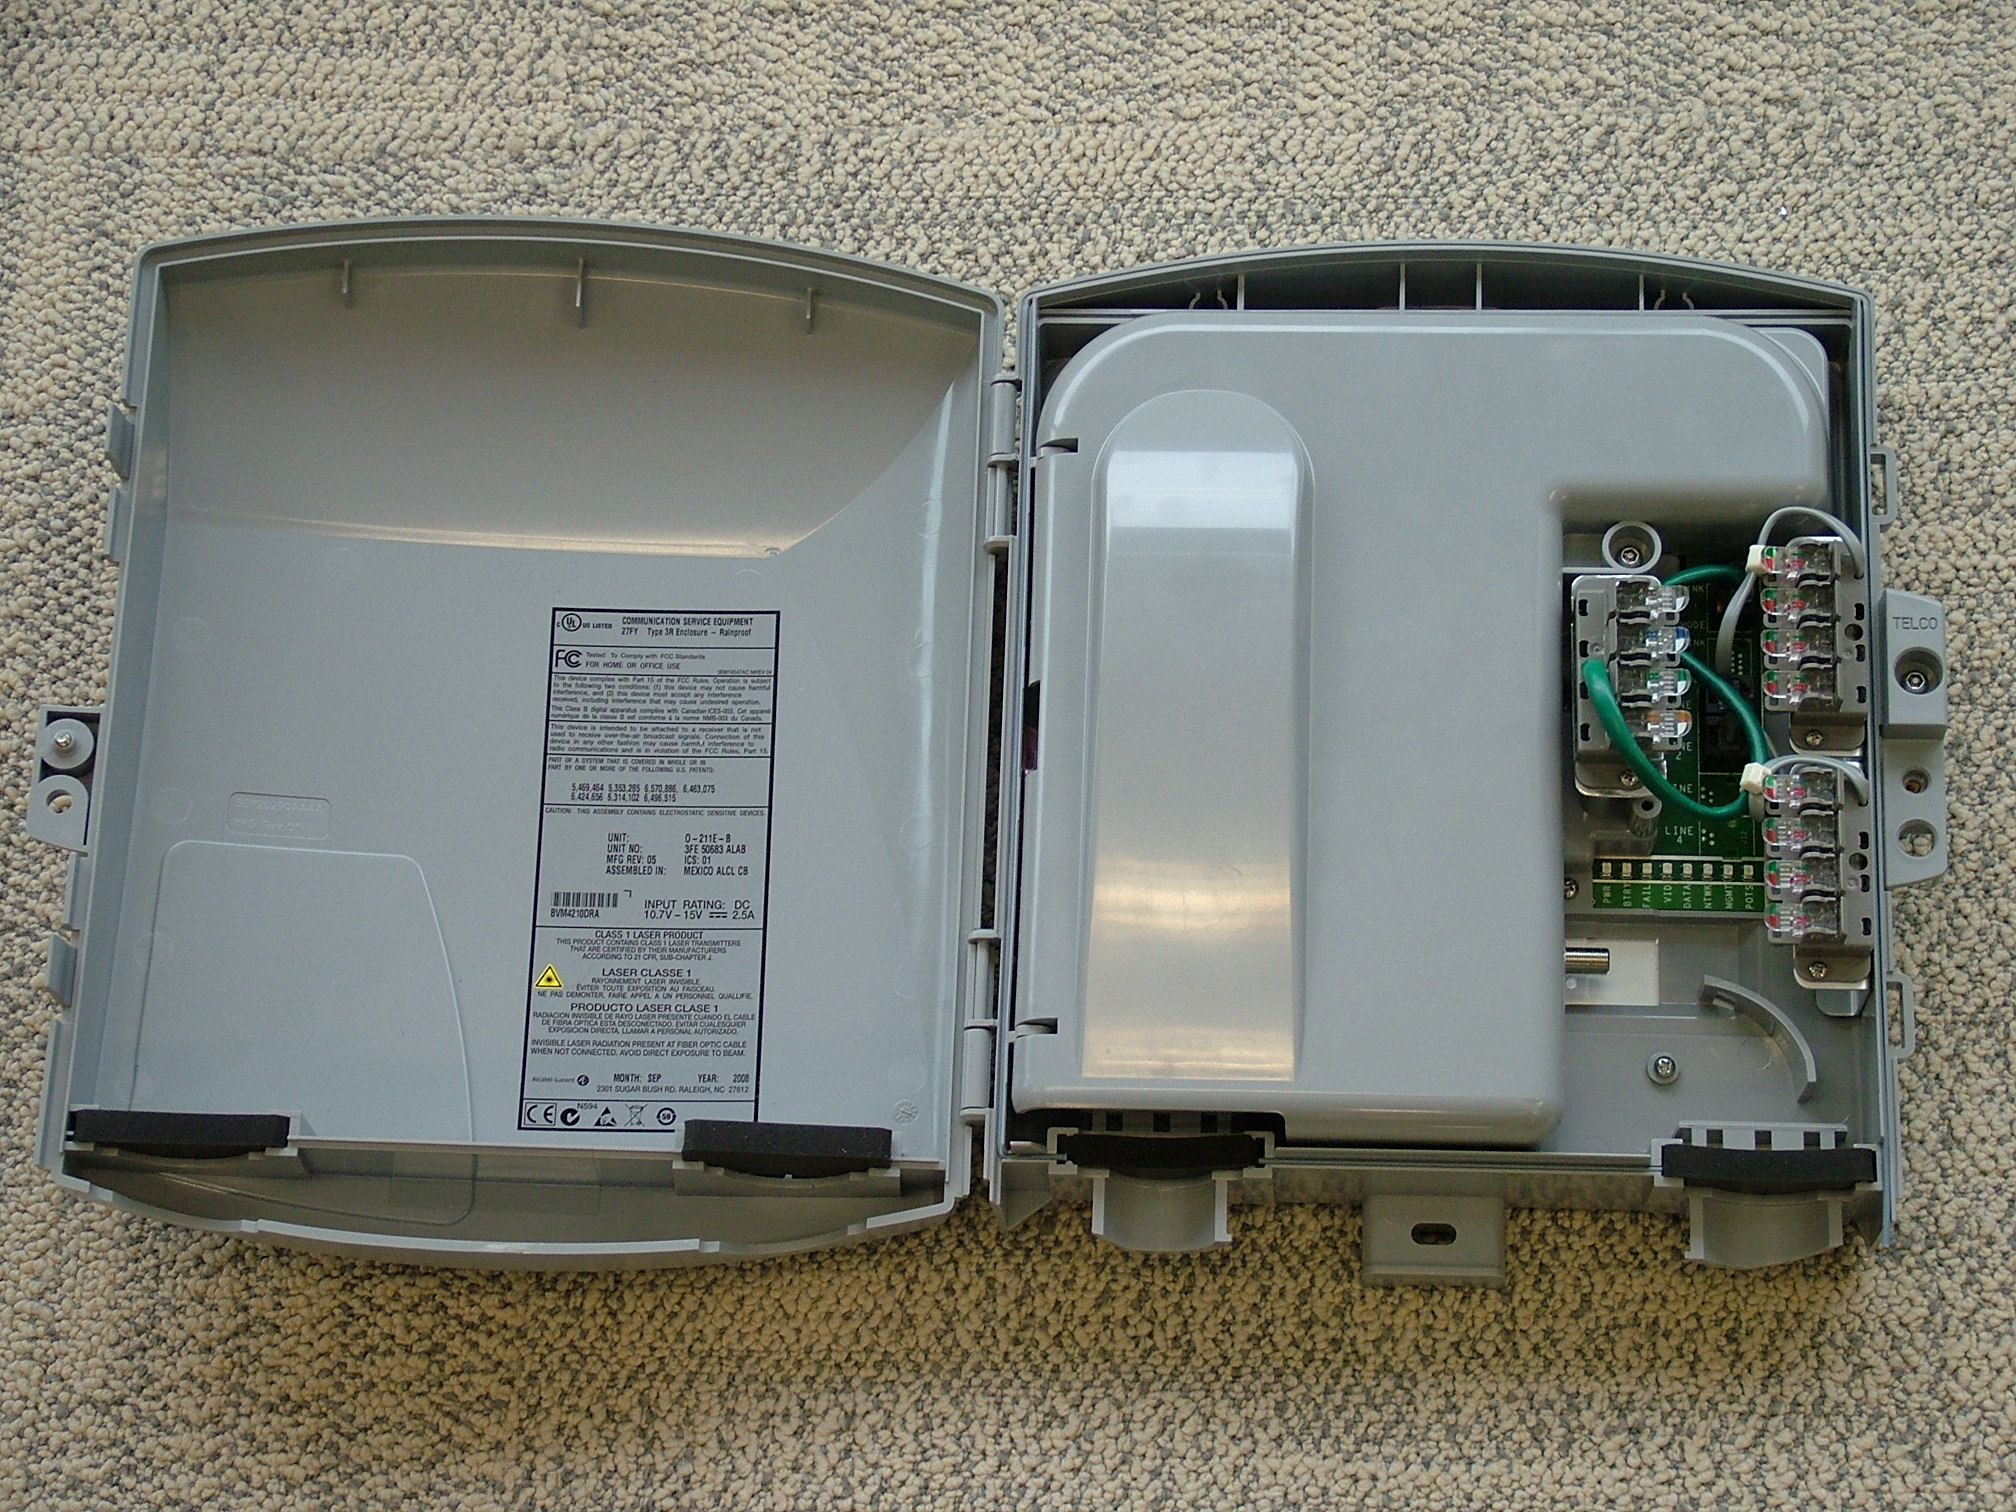 An opened external Optical Network Terminal (ONT)